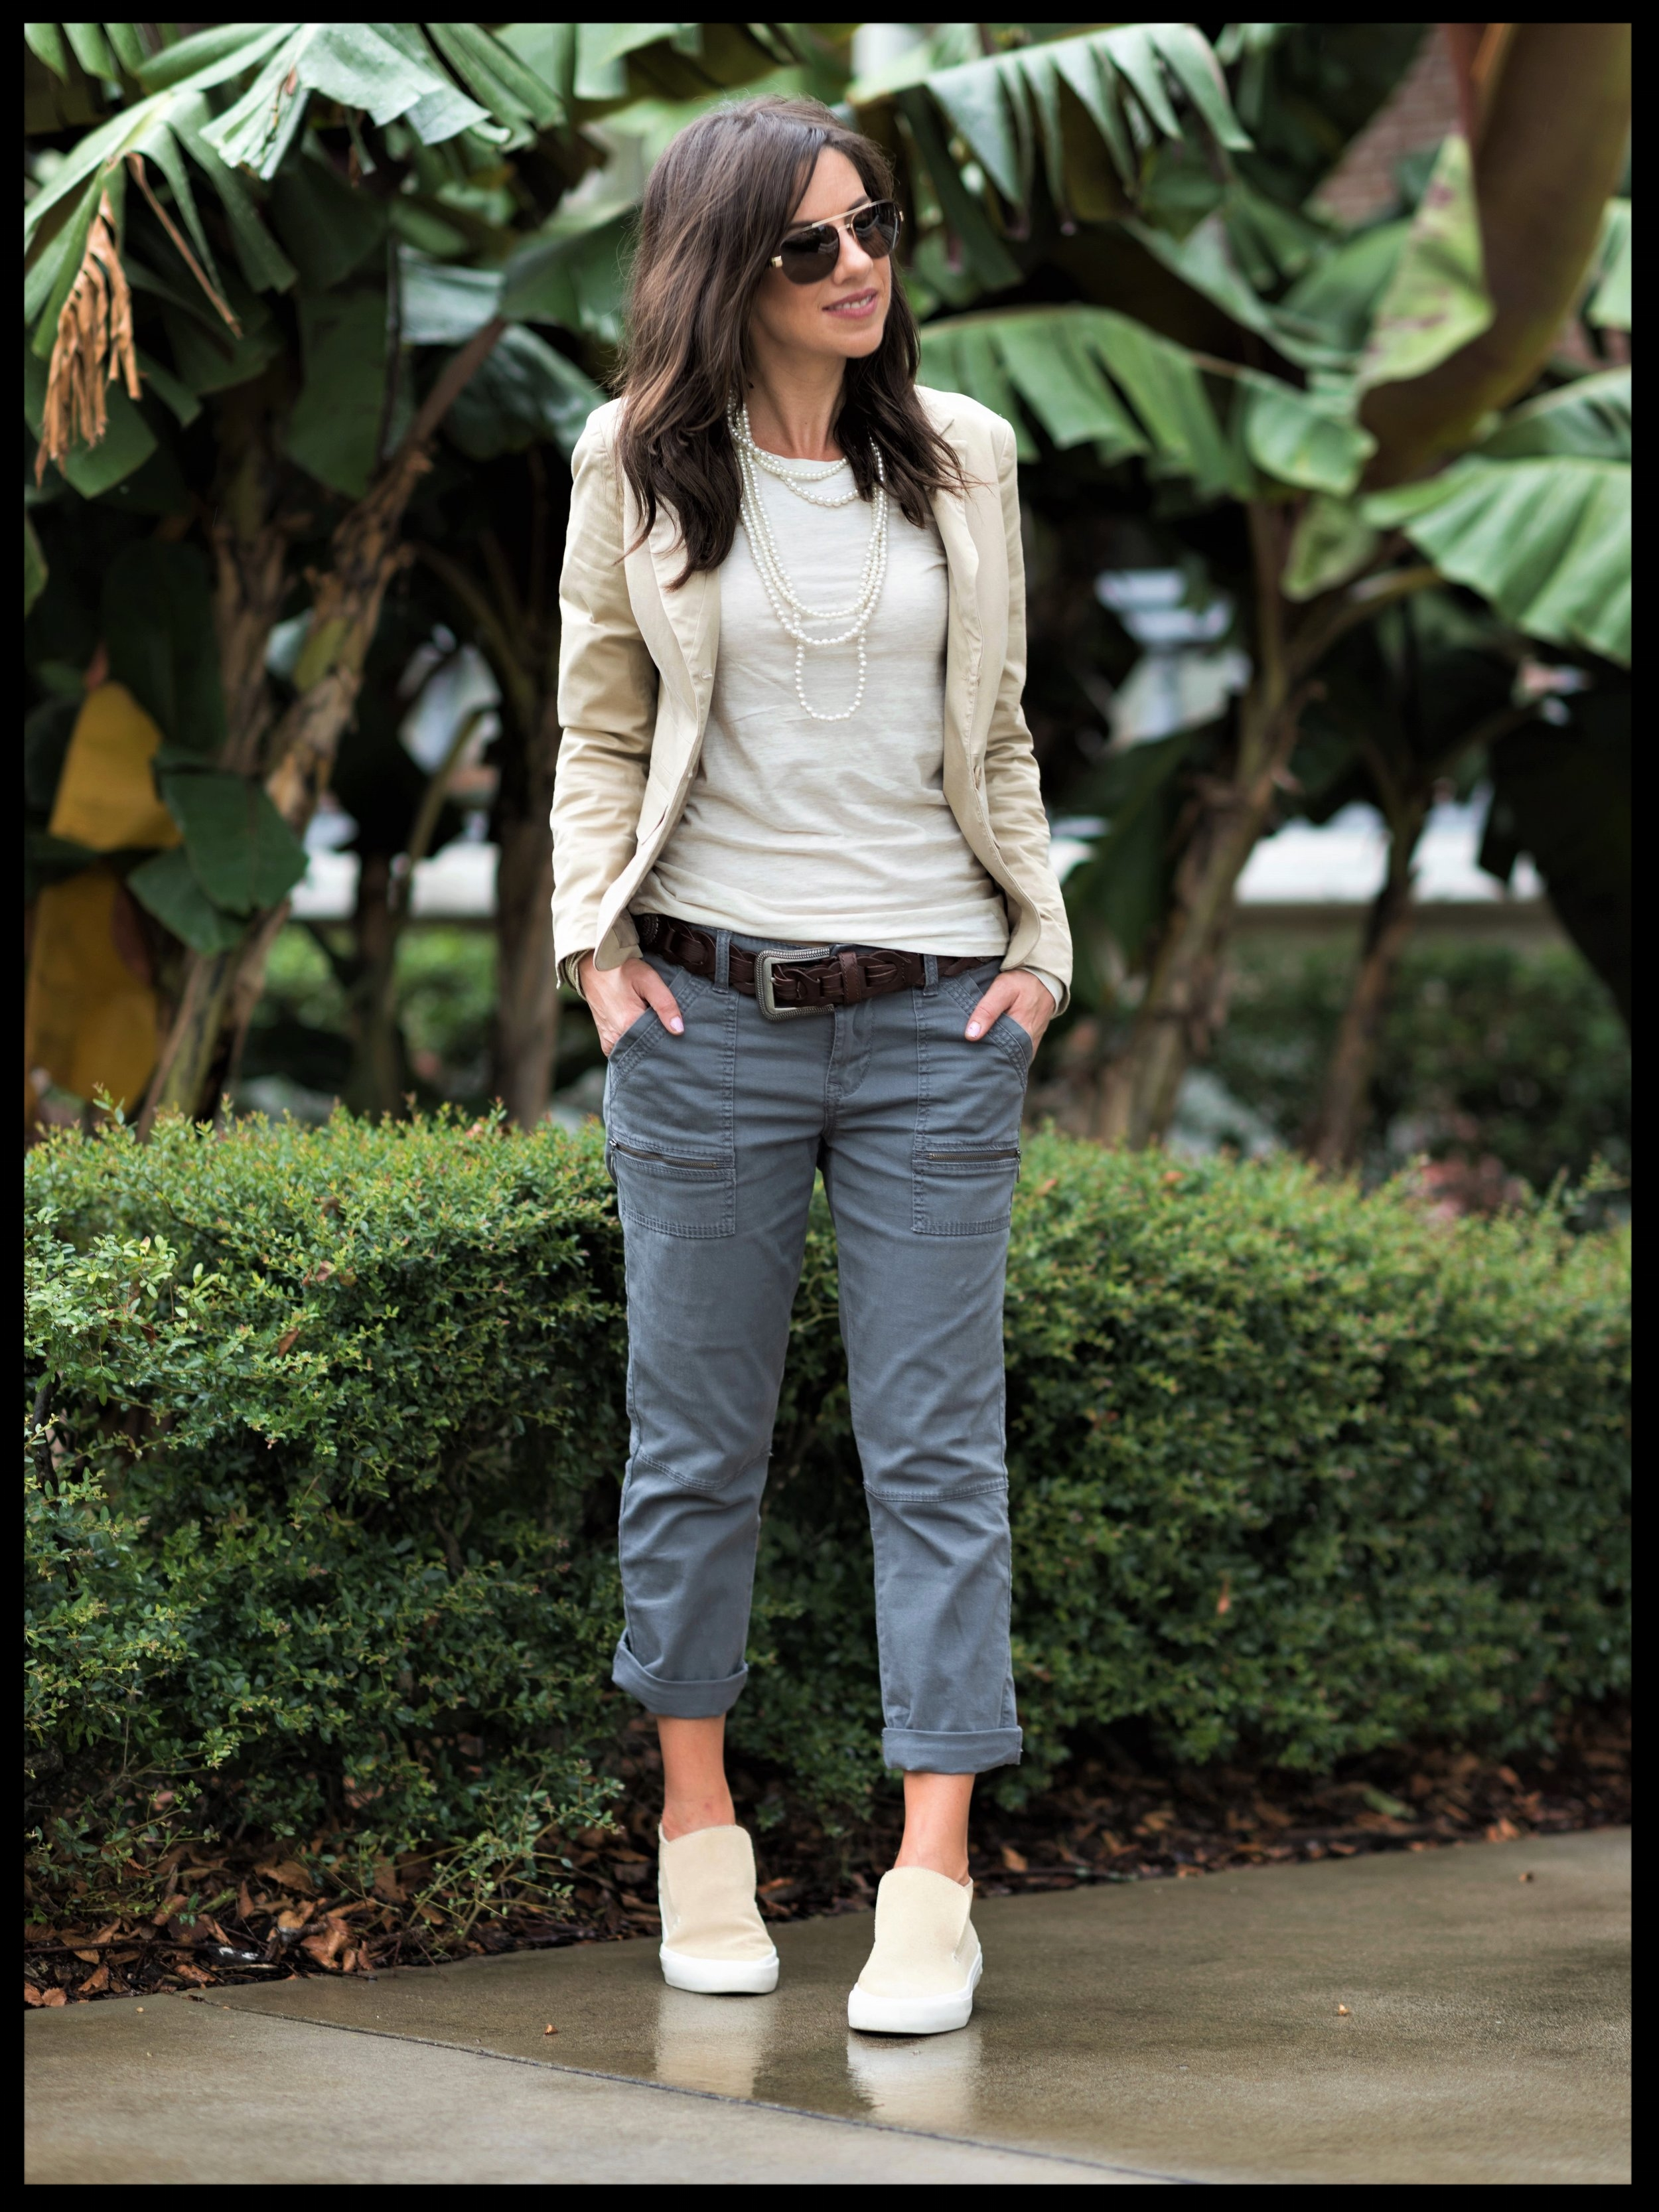 Offset Casual With a Dose of Glam - For the Perfect Polished Casual Look.